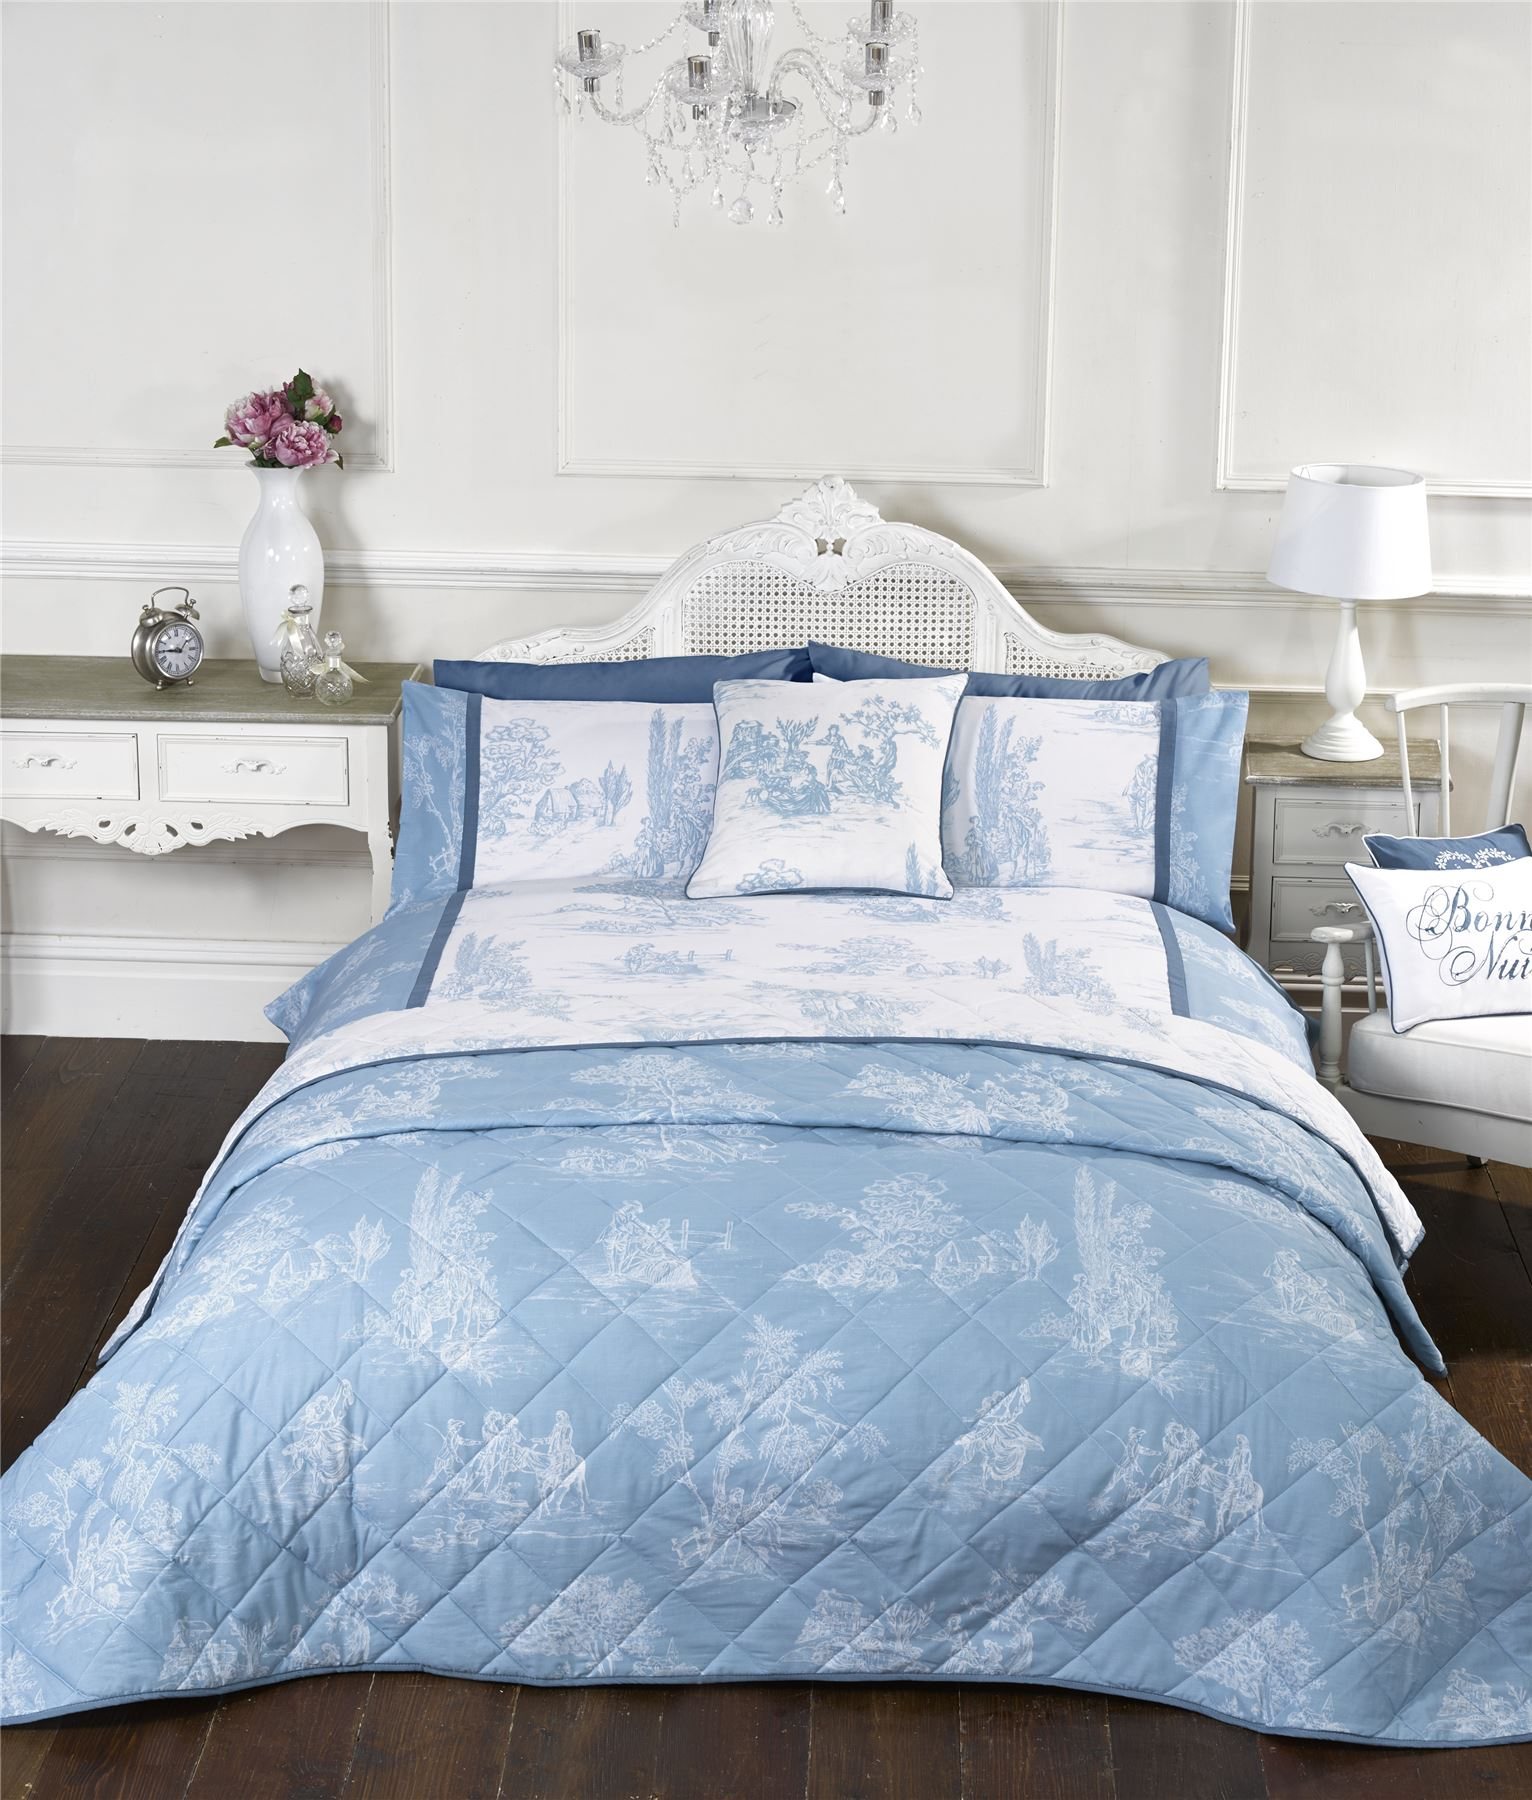 king sets covers luxury bedding grey beautiful cover of blue duvet